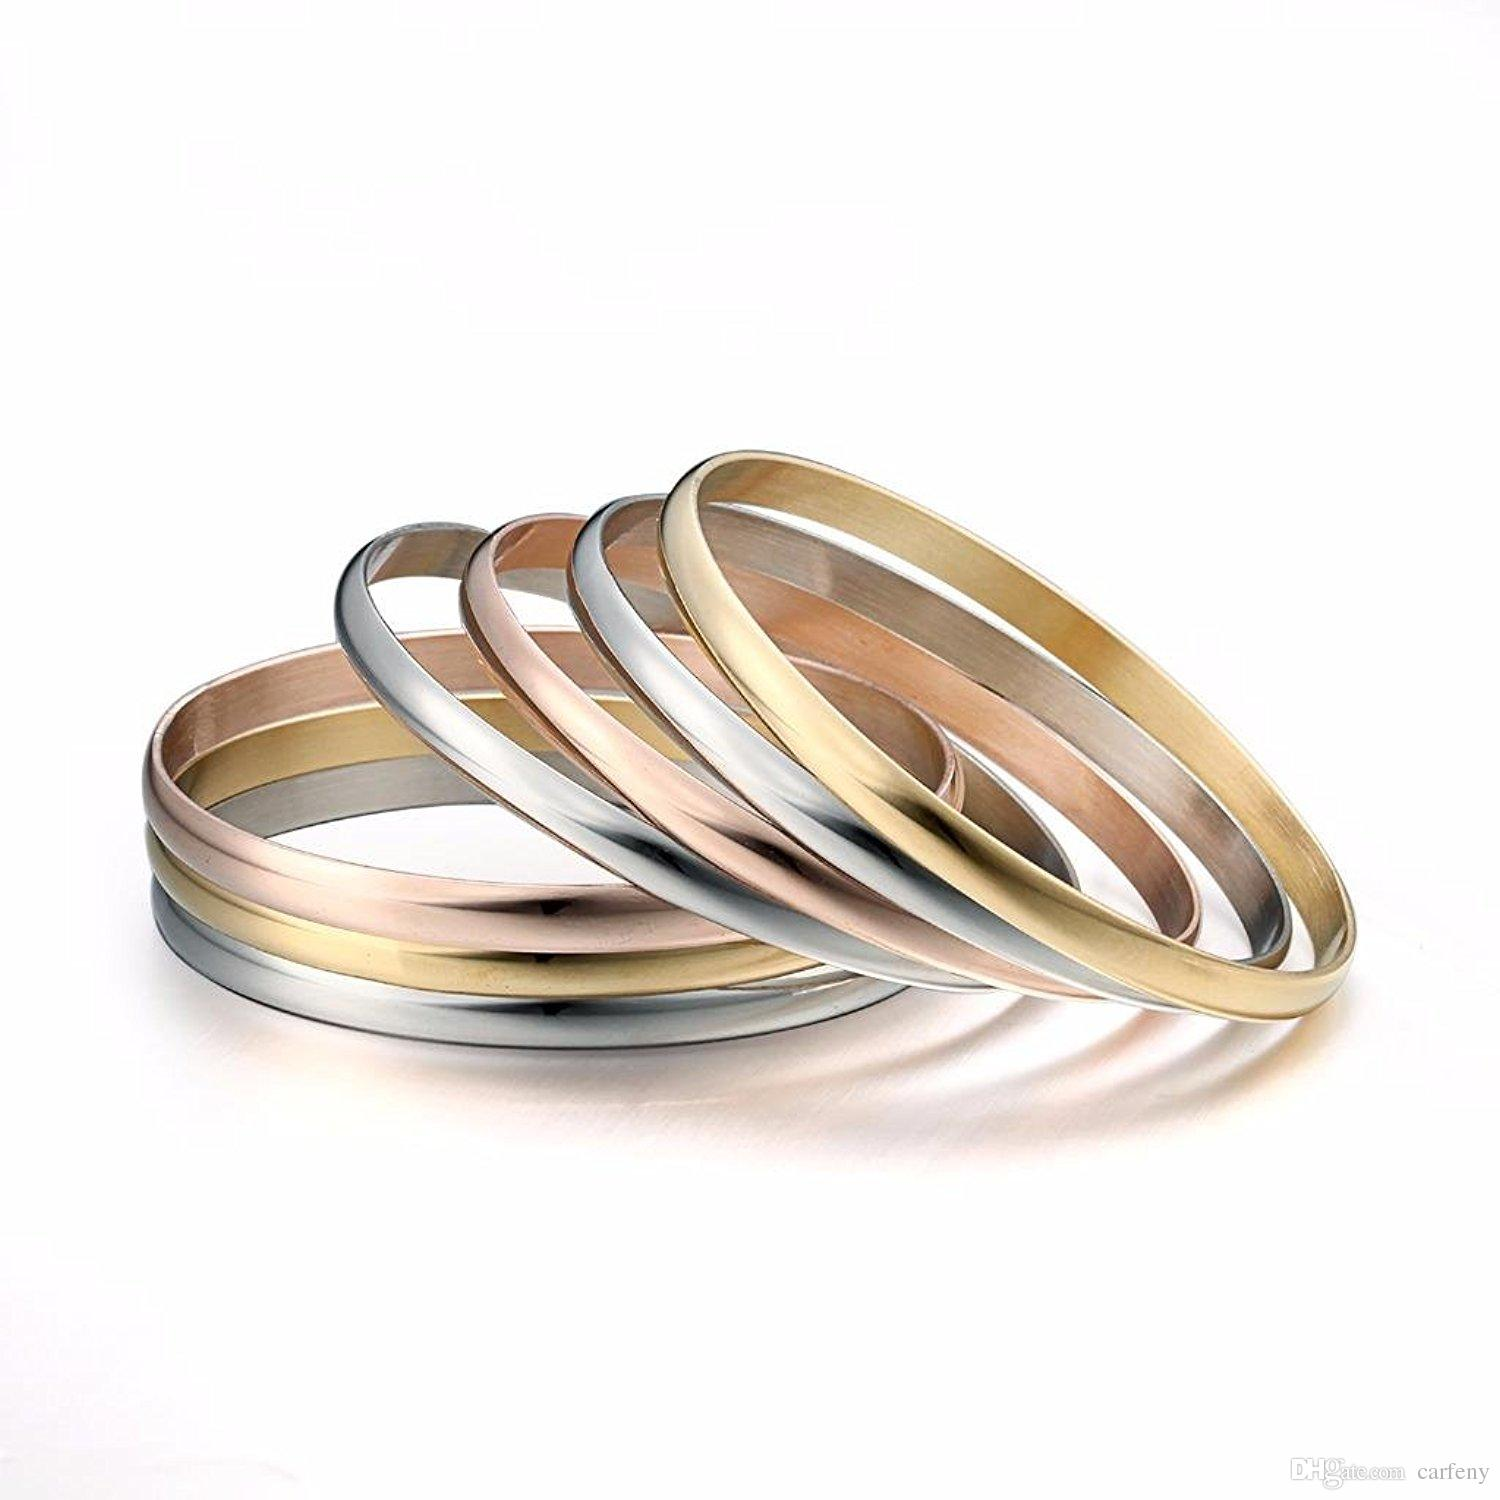 love rose bangles gold in sterling bracelets and bracelet levin silver knot ed bangle